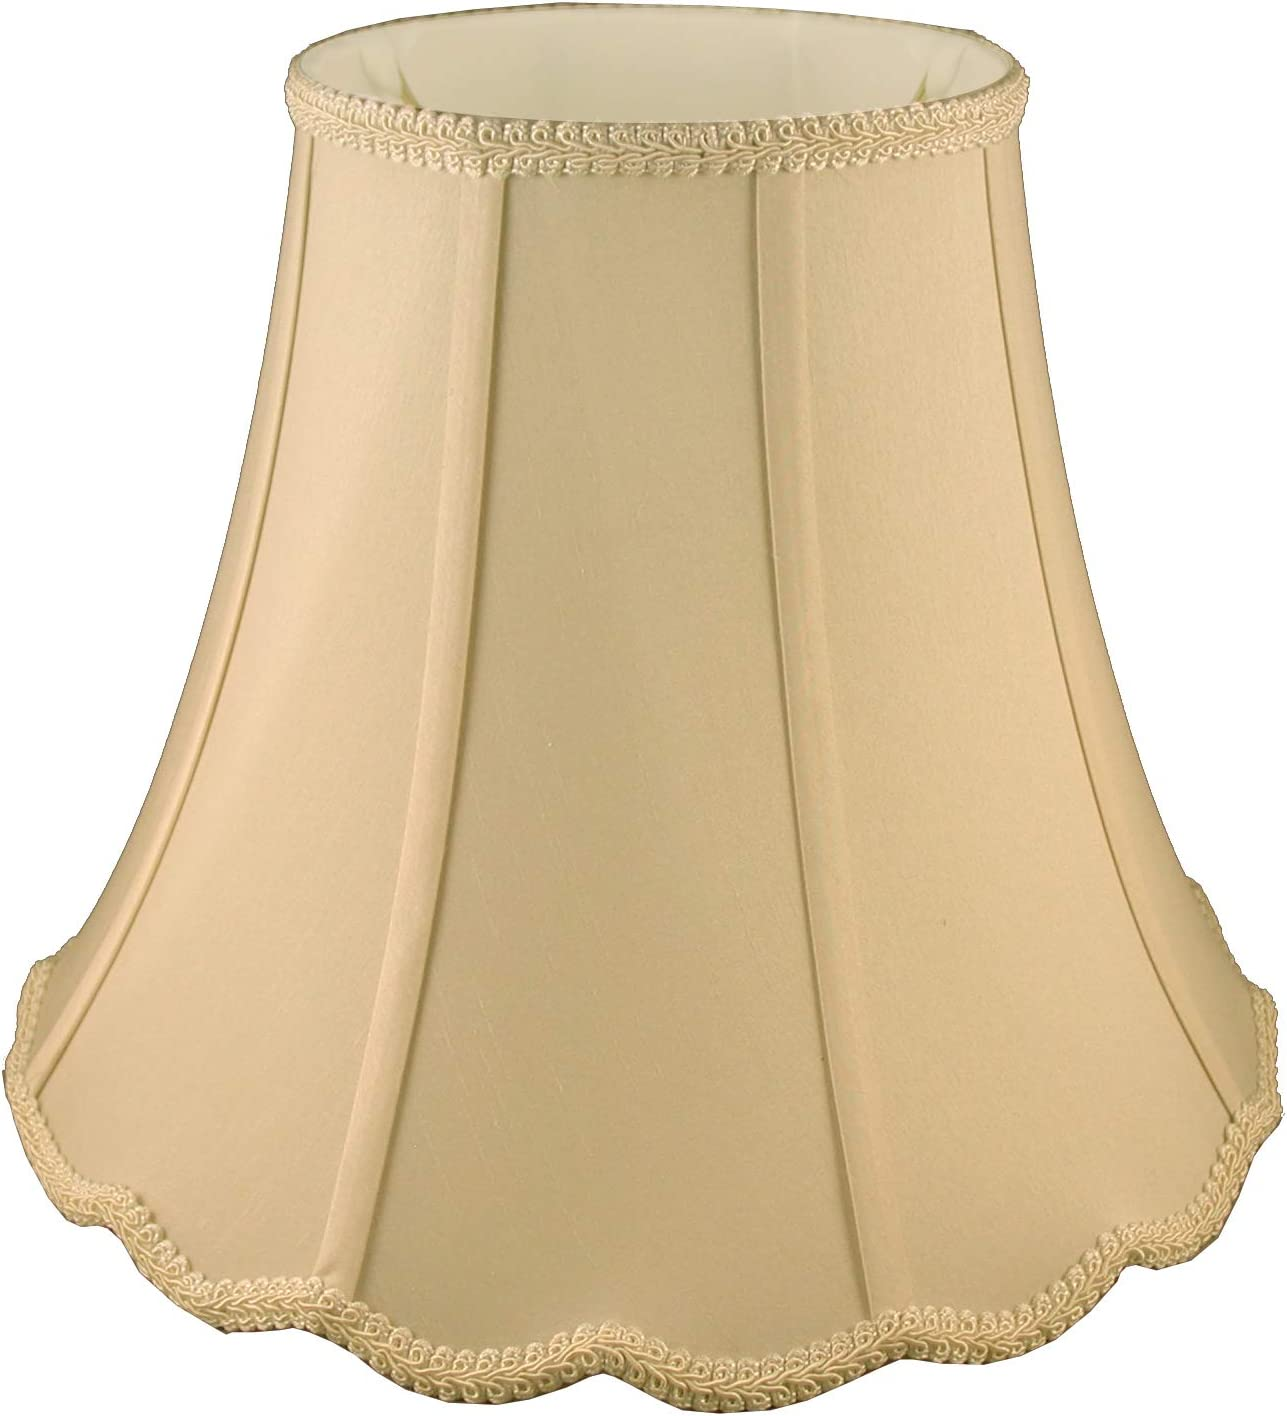 American Pride 10 x 20 x 15 Scallop Soft Shantung Tailored Lampshade, Honey